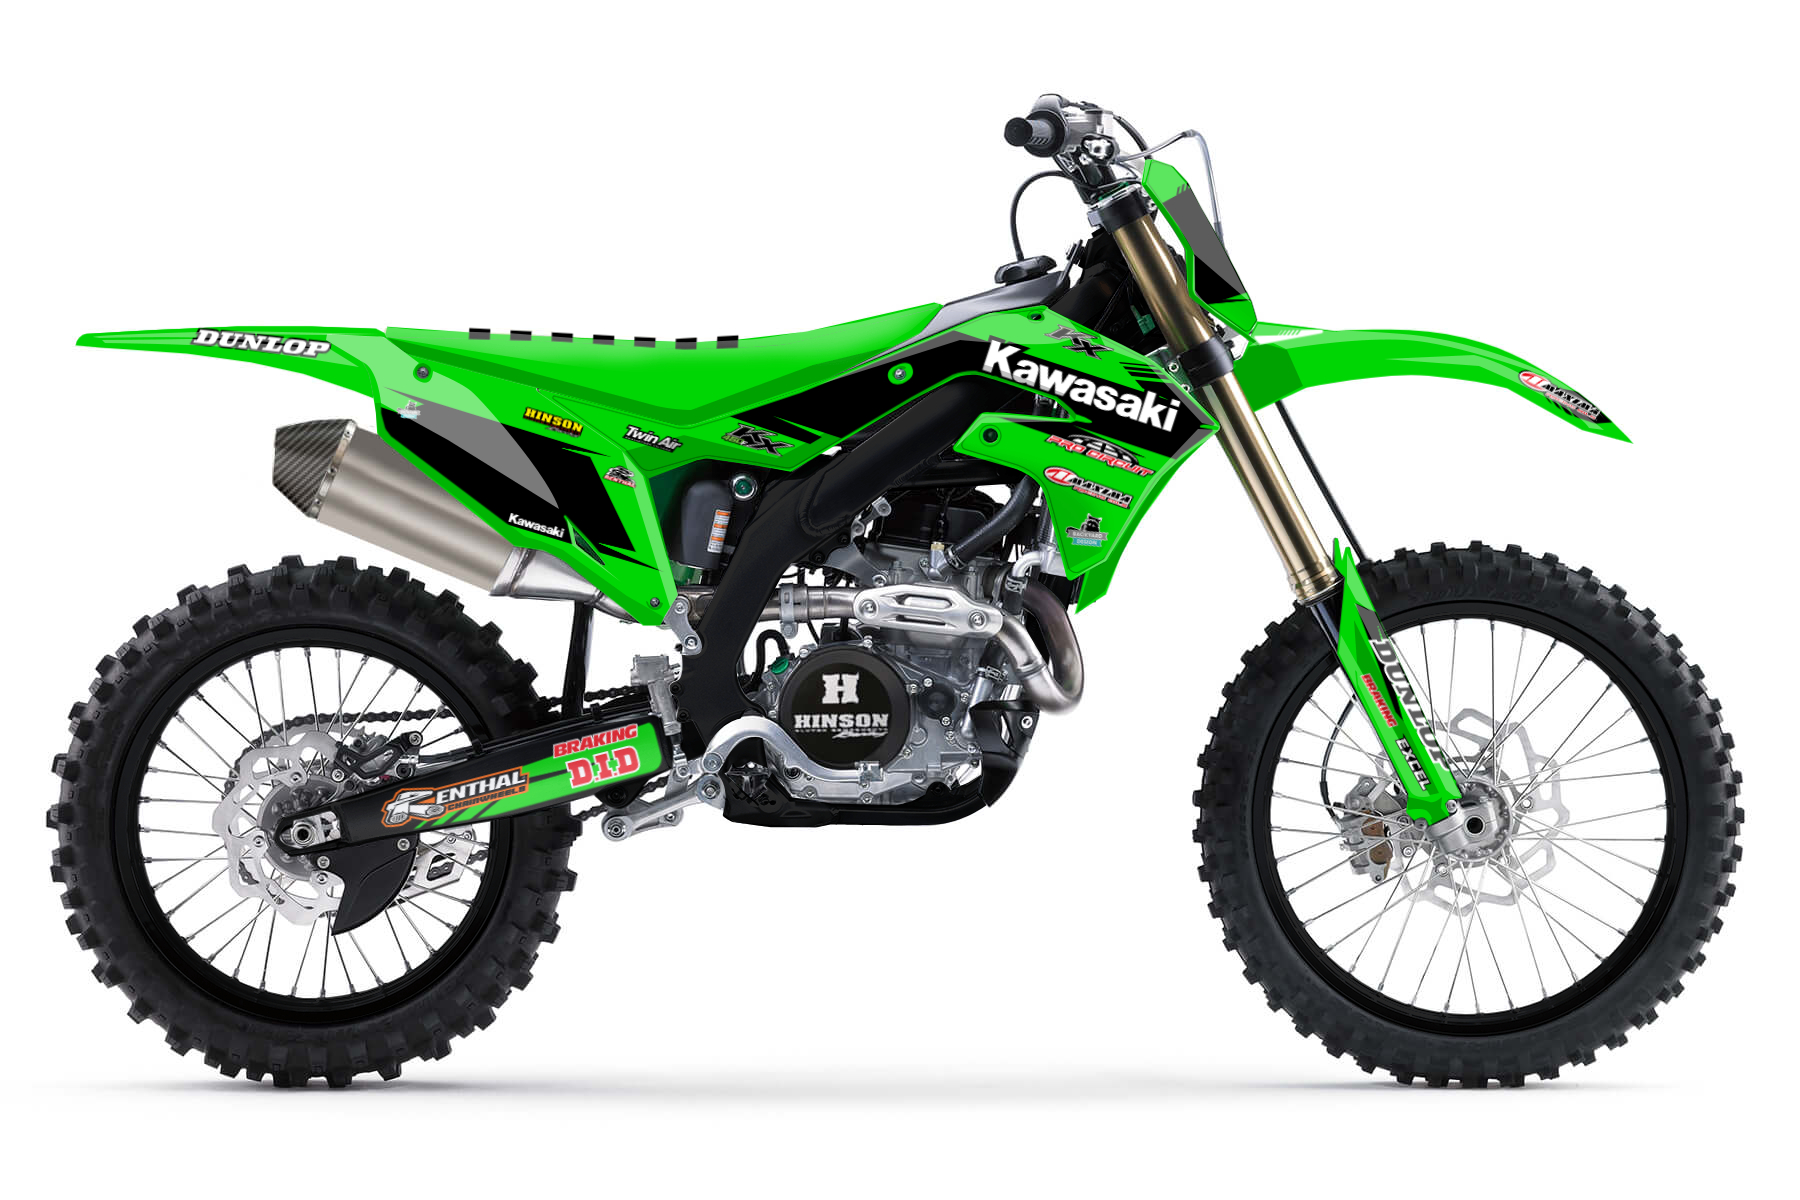 Kawasaki KX450F MX Graphic Kits  You want a bike that combines a lot of power with good handling and a sturdy aluminium frame, then the Kawasaki KX 450 F is the perfect bike for you.